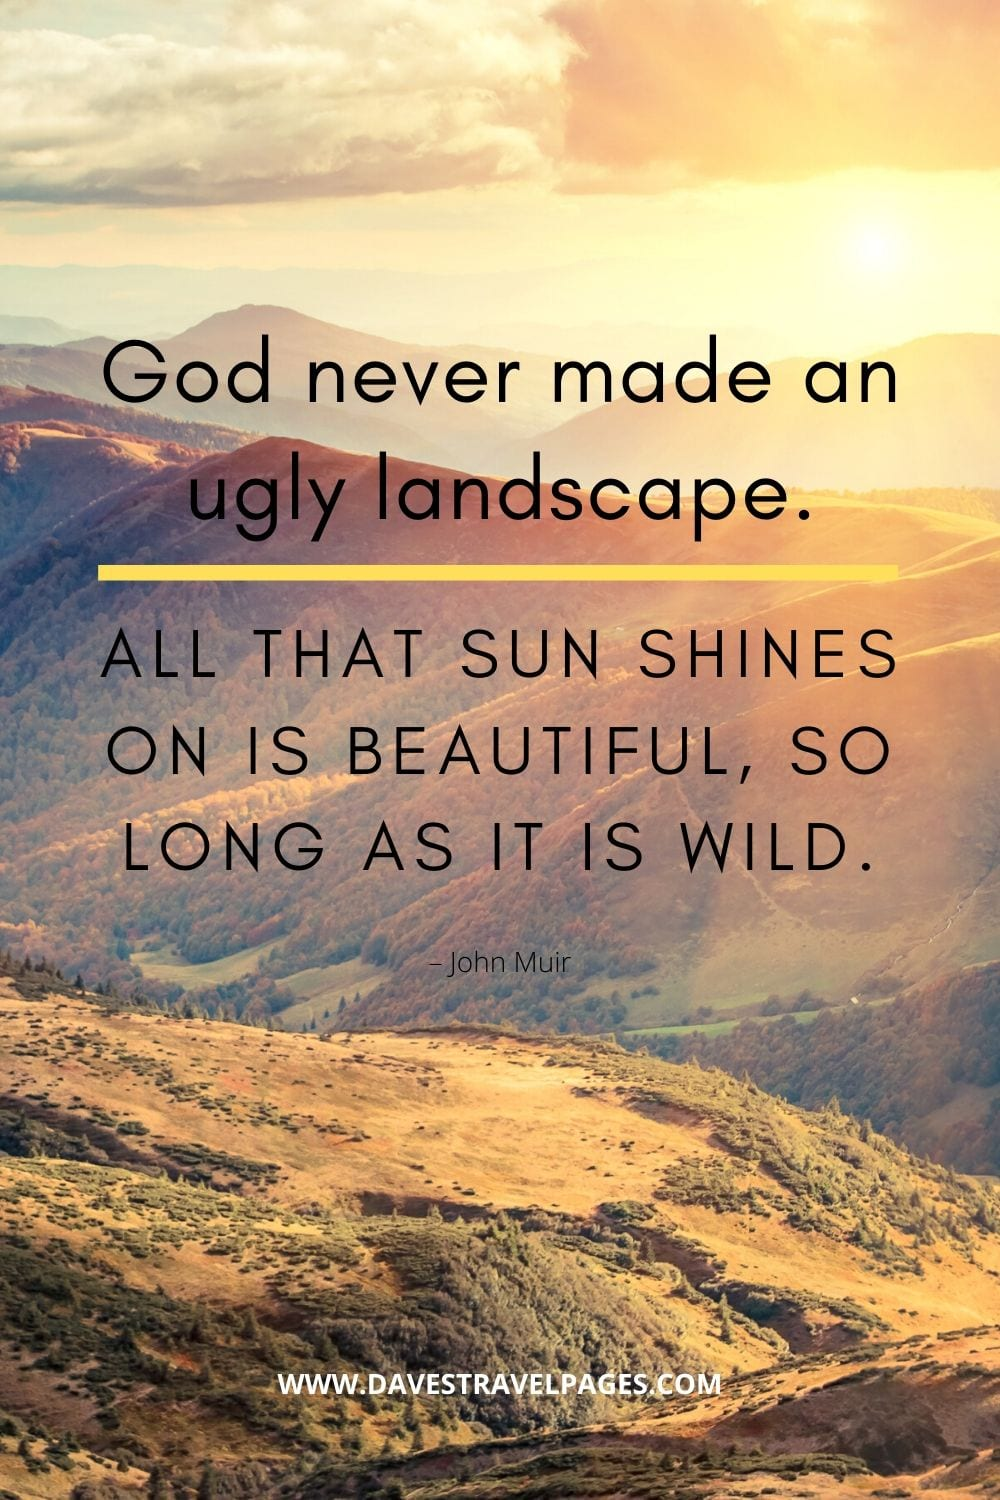 """Outdoor quotes: """"God never made an ugly landscape. All that sun shines on is beautiful, so long as it is wild."""" – John Muir"""